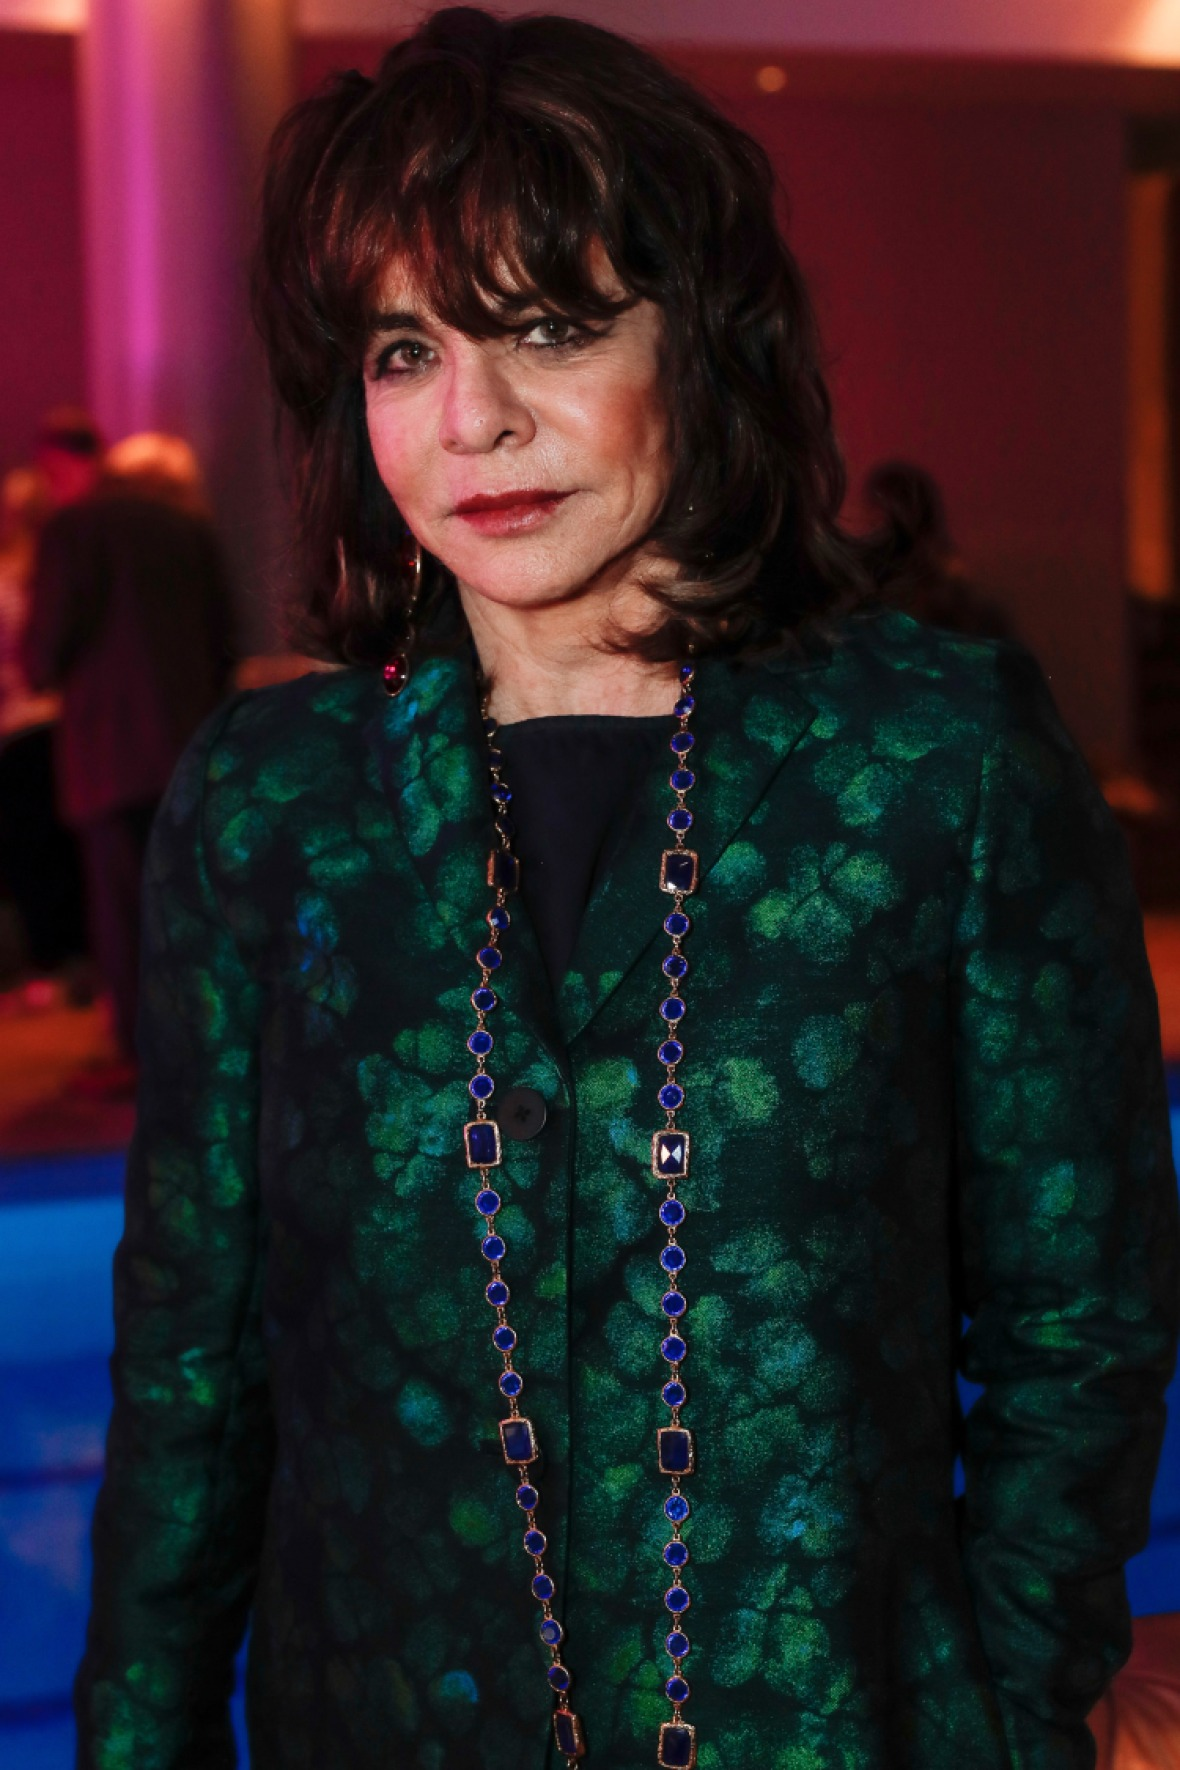 stockard channing getty images